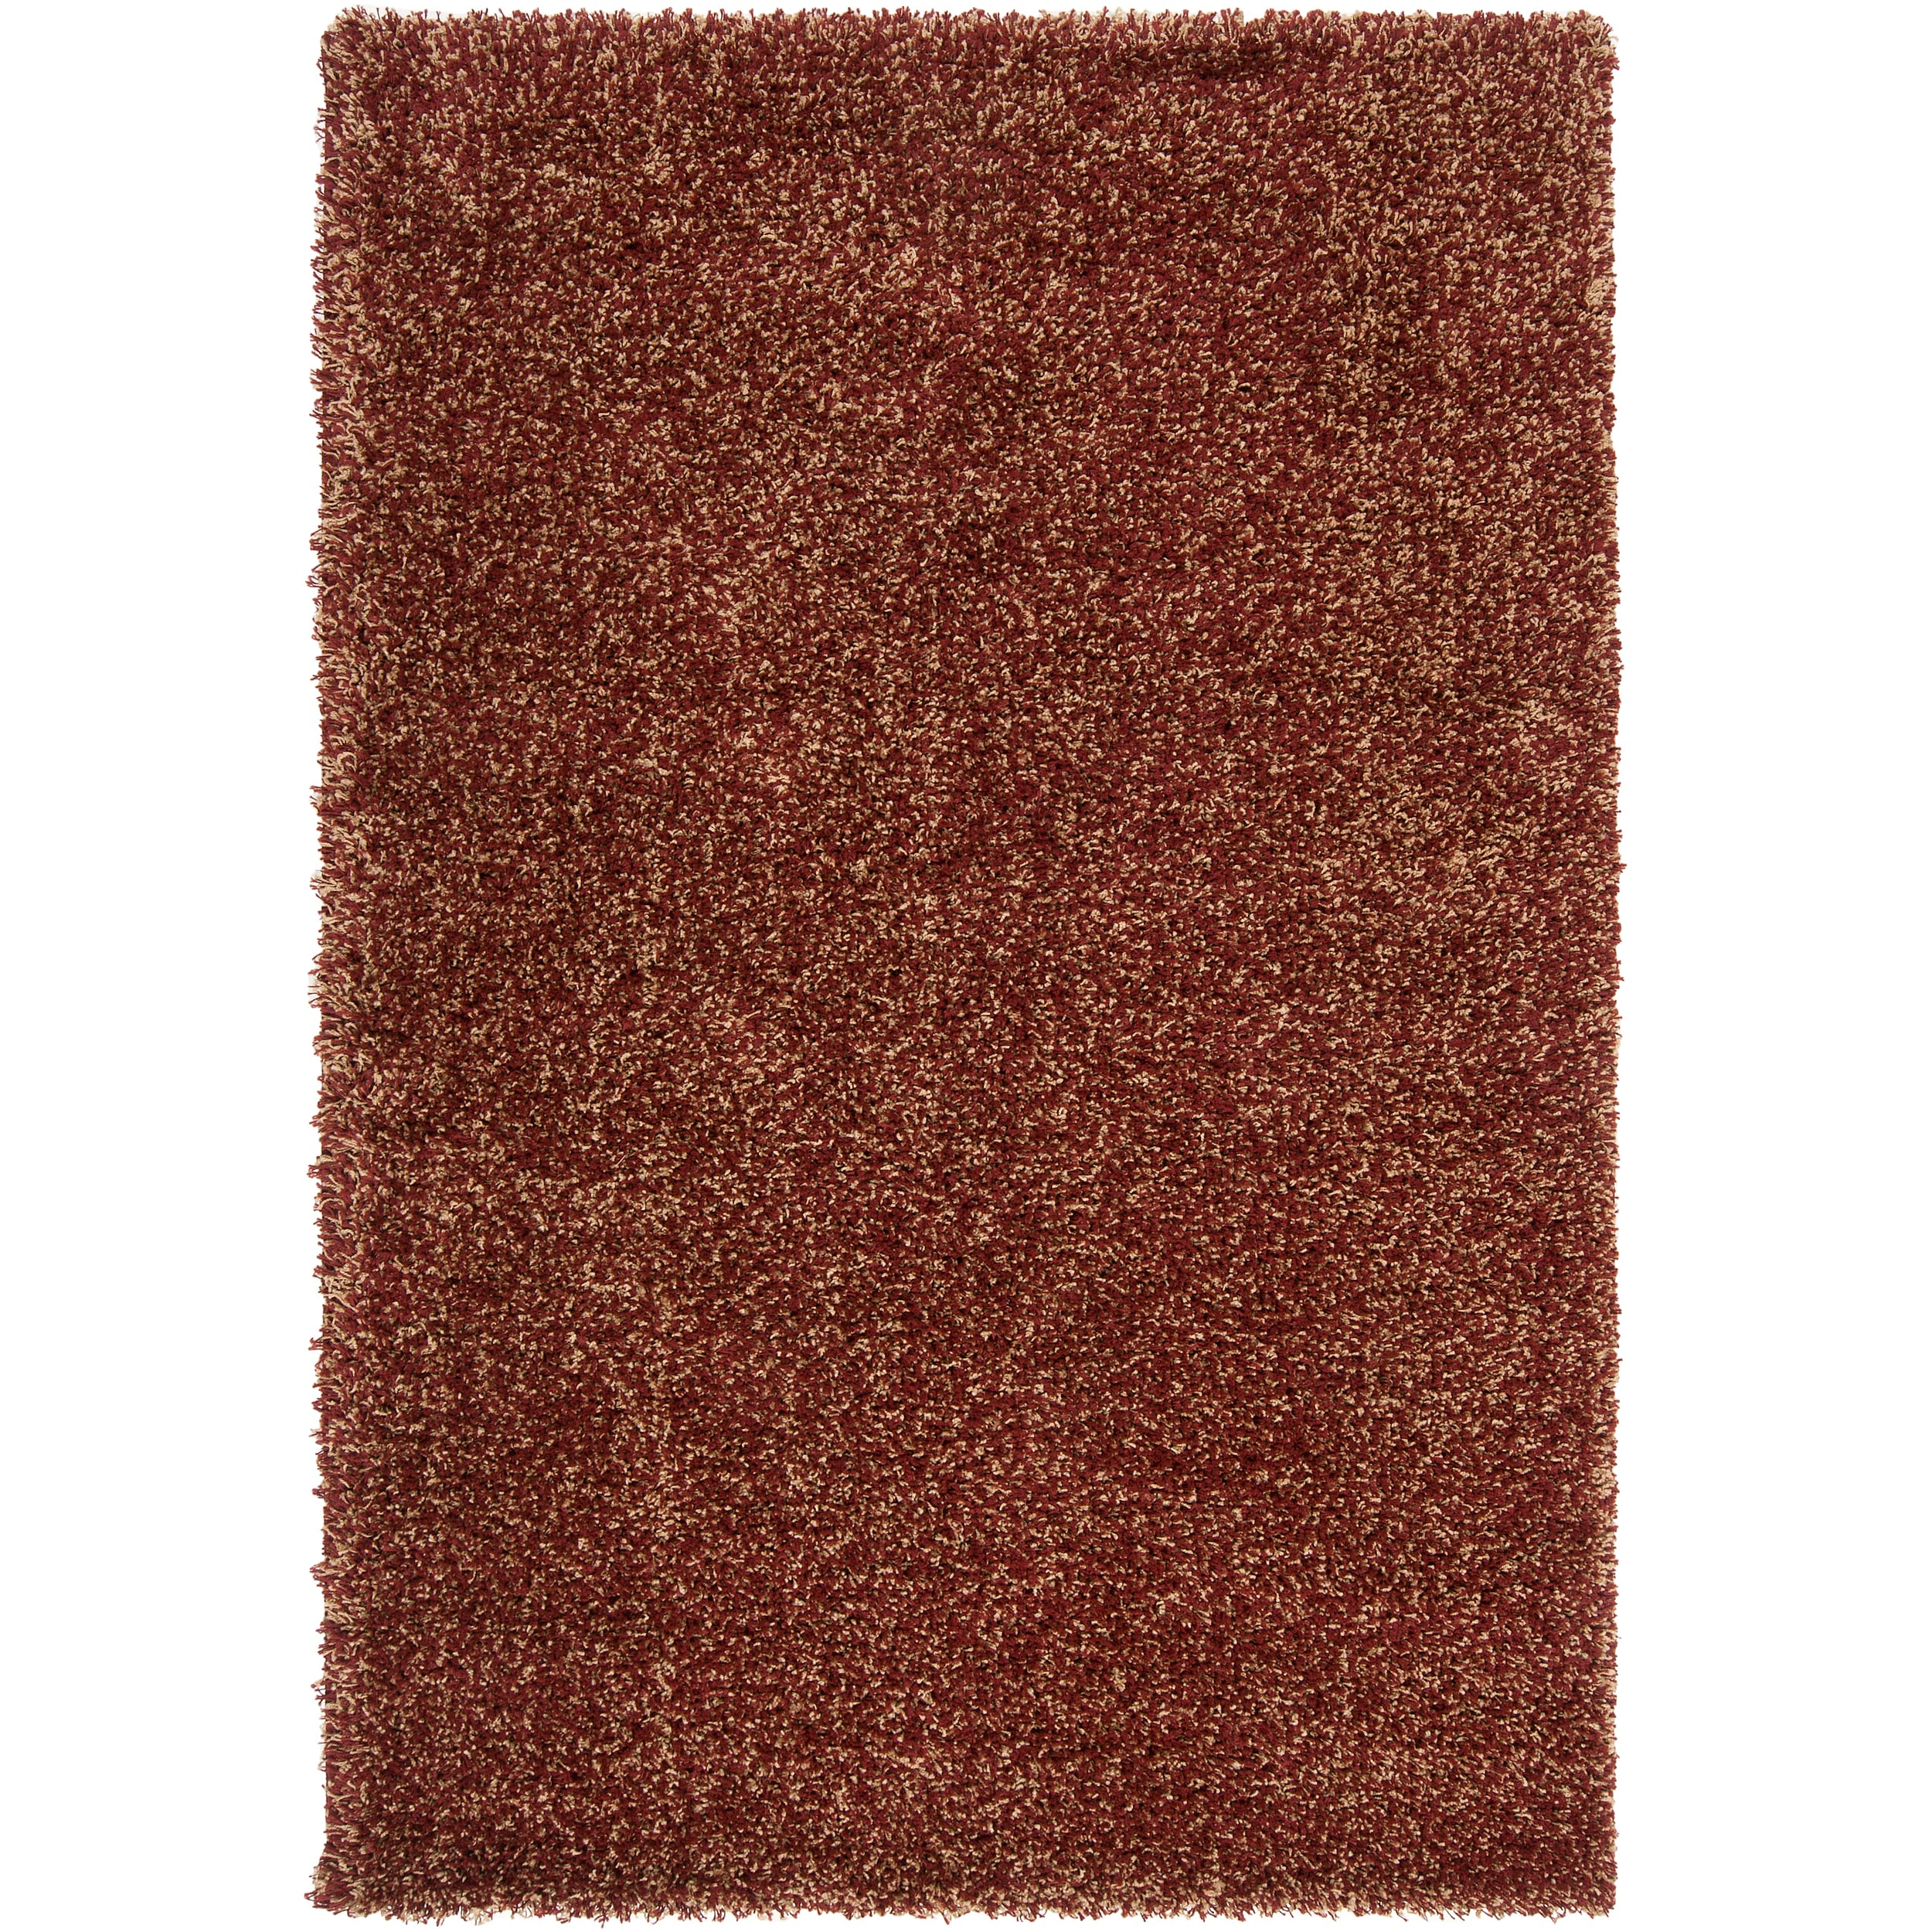 "Woven Red Luxurious Soft Machine-Made Shag Rug (7'10"" x 10'6"")"